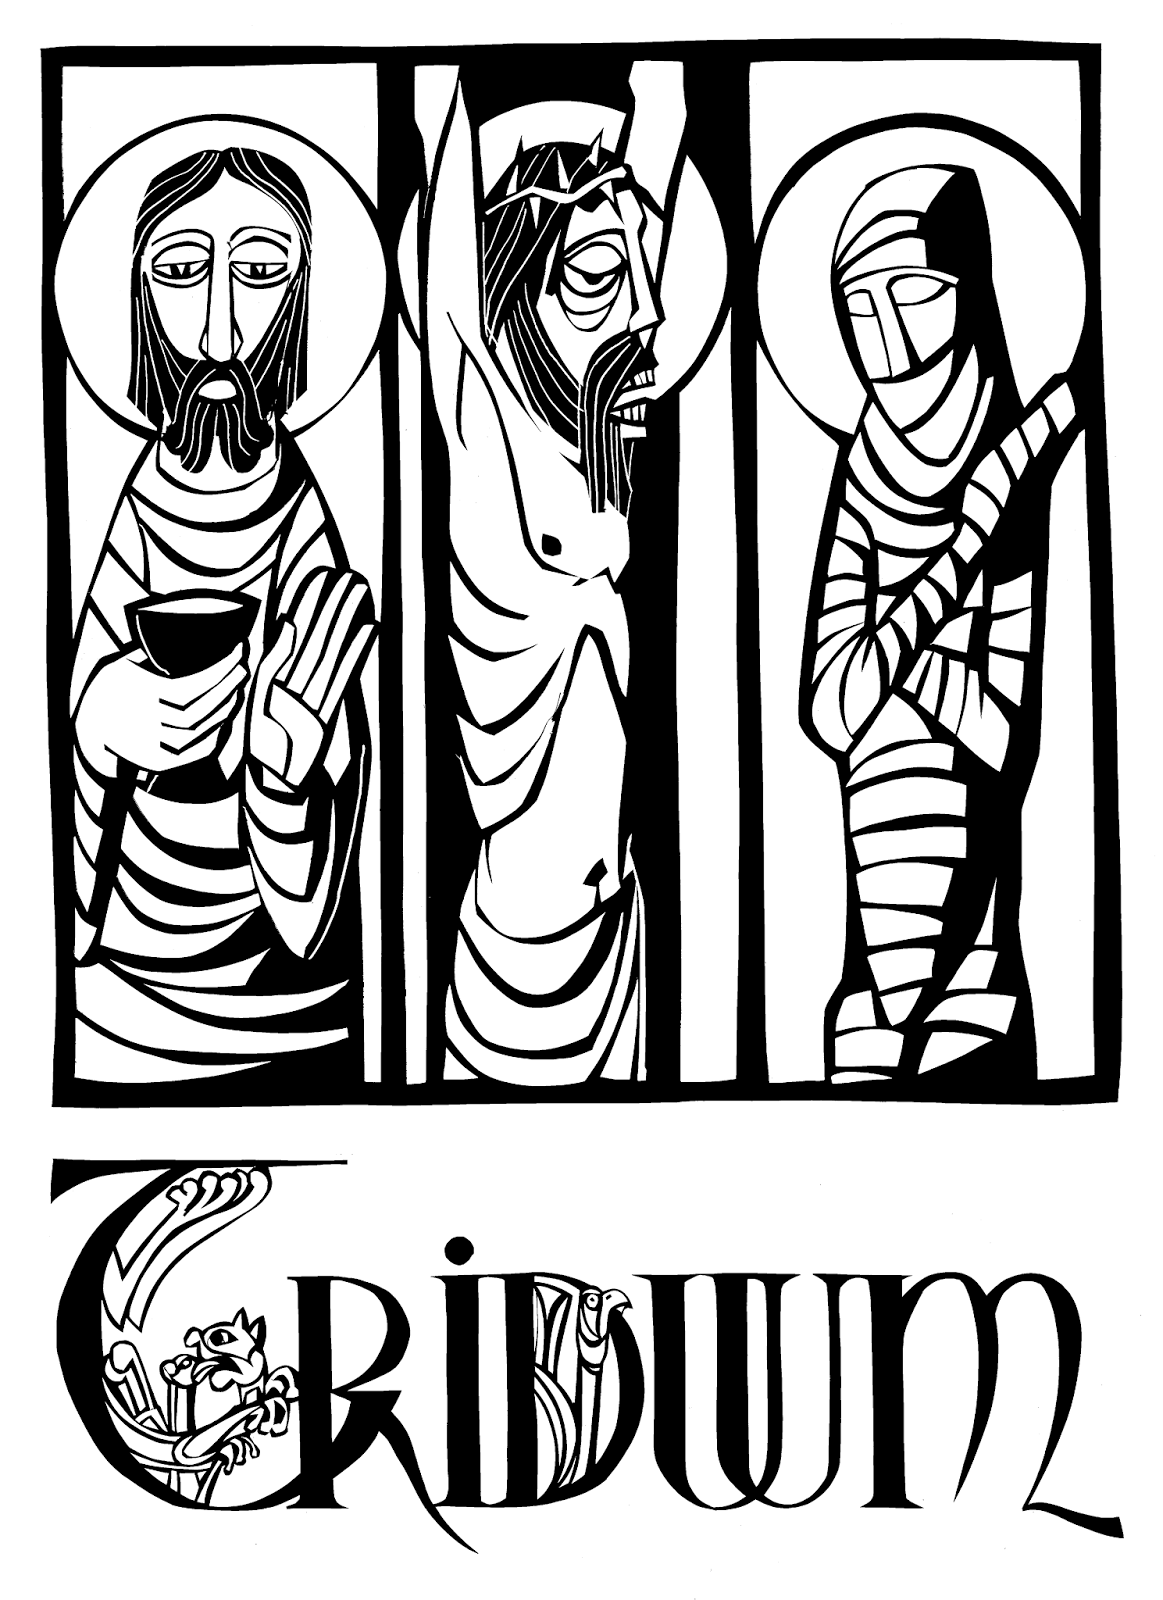 St. Alban's Episcopal Church: Holy Week and Easter at St